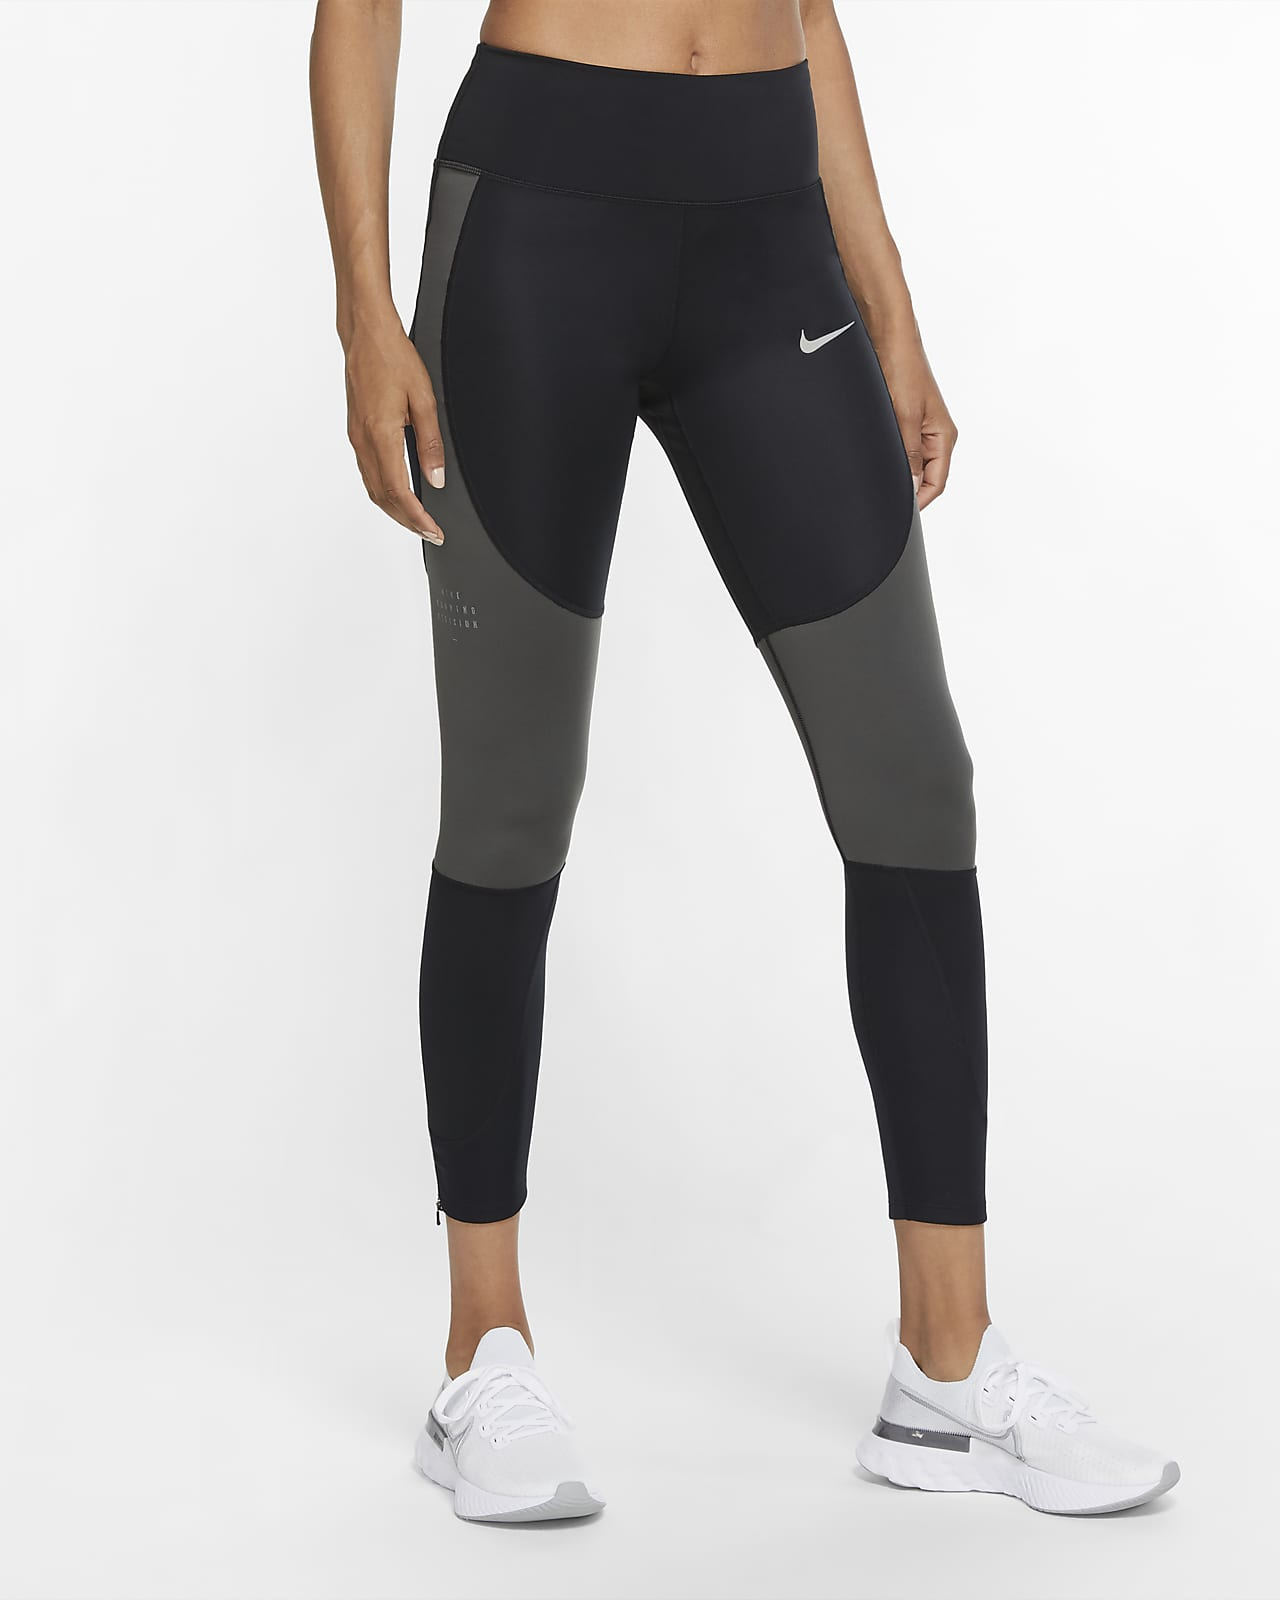 Nike Epic Luxe Run Division Lauf-Tights für Damen